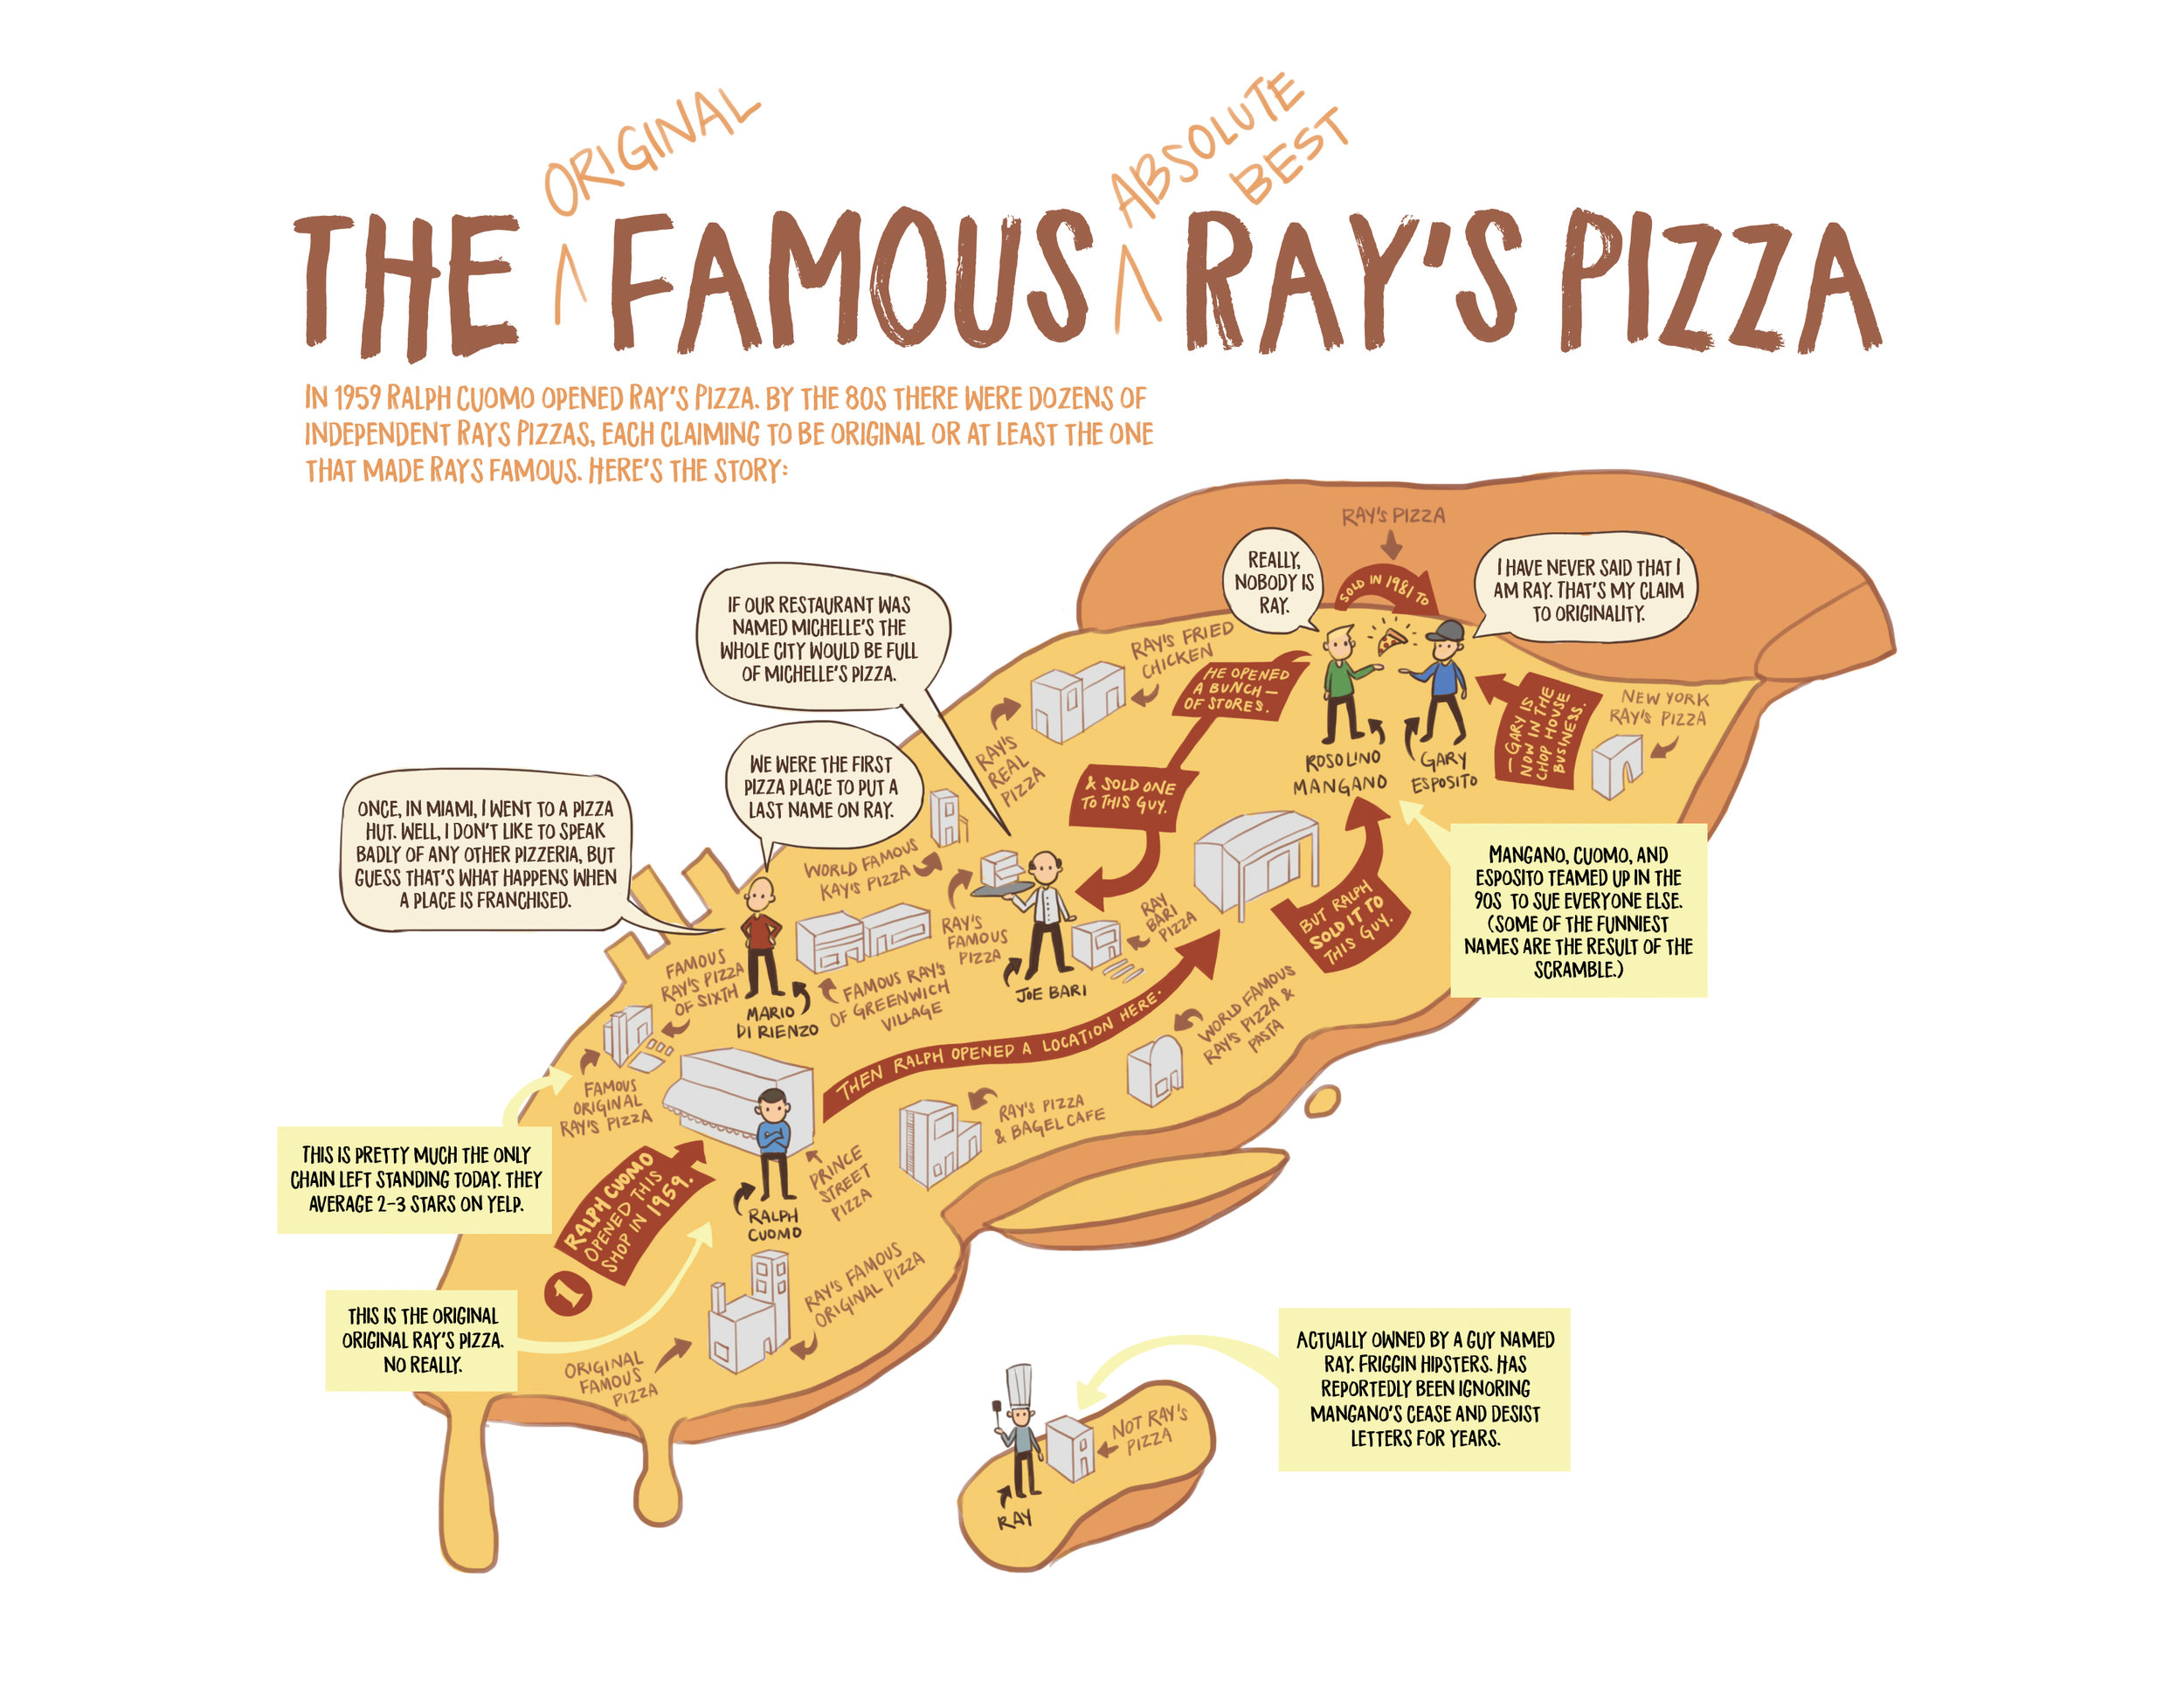 The story of the infamous Ray's Pizza, a pizza shop in New York that spurred a generation of copycats.